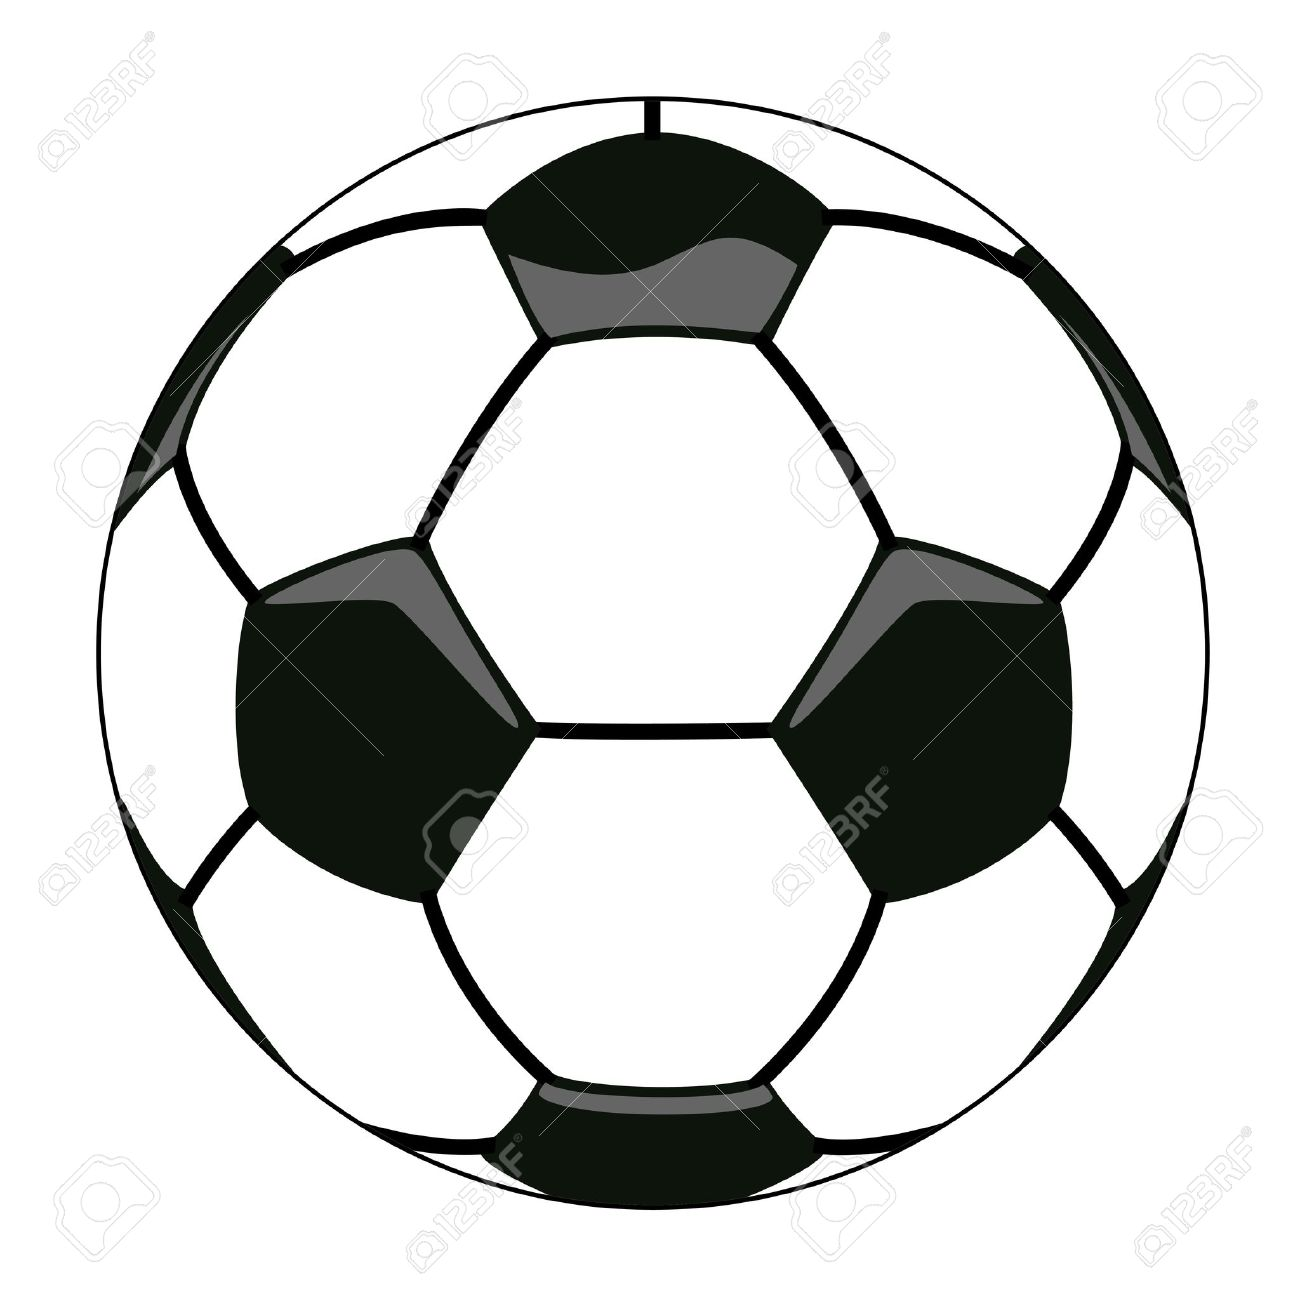 vector illustration of soccer ball clipart royalty free cliparts rh 123rf com ball clip art images ball clipart png